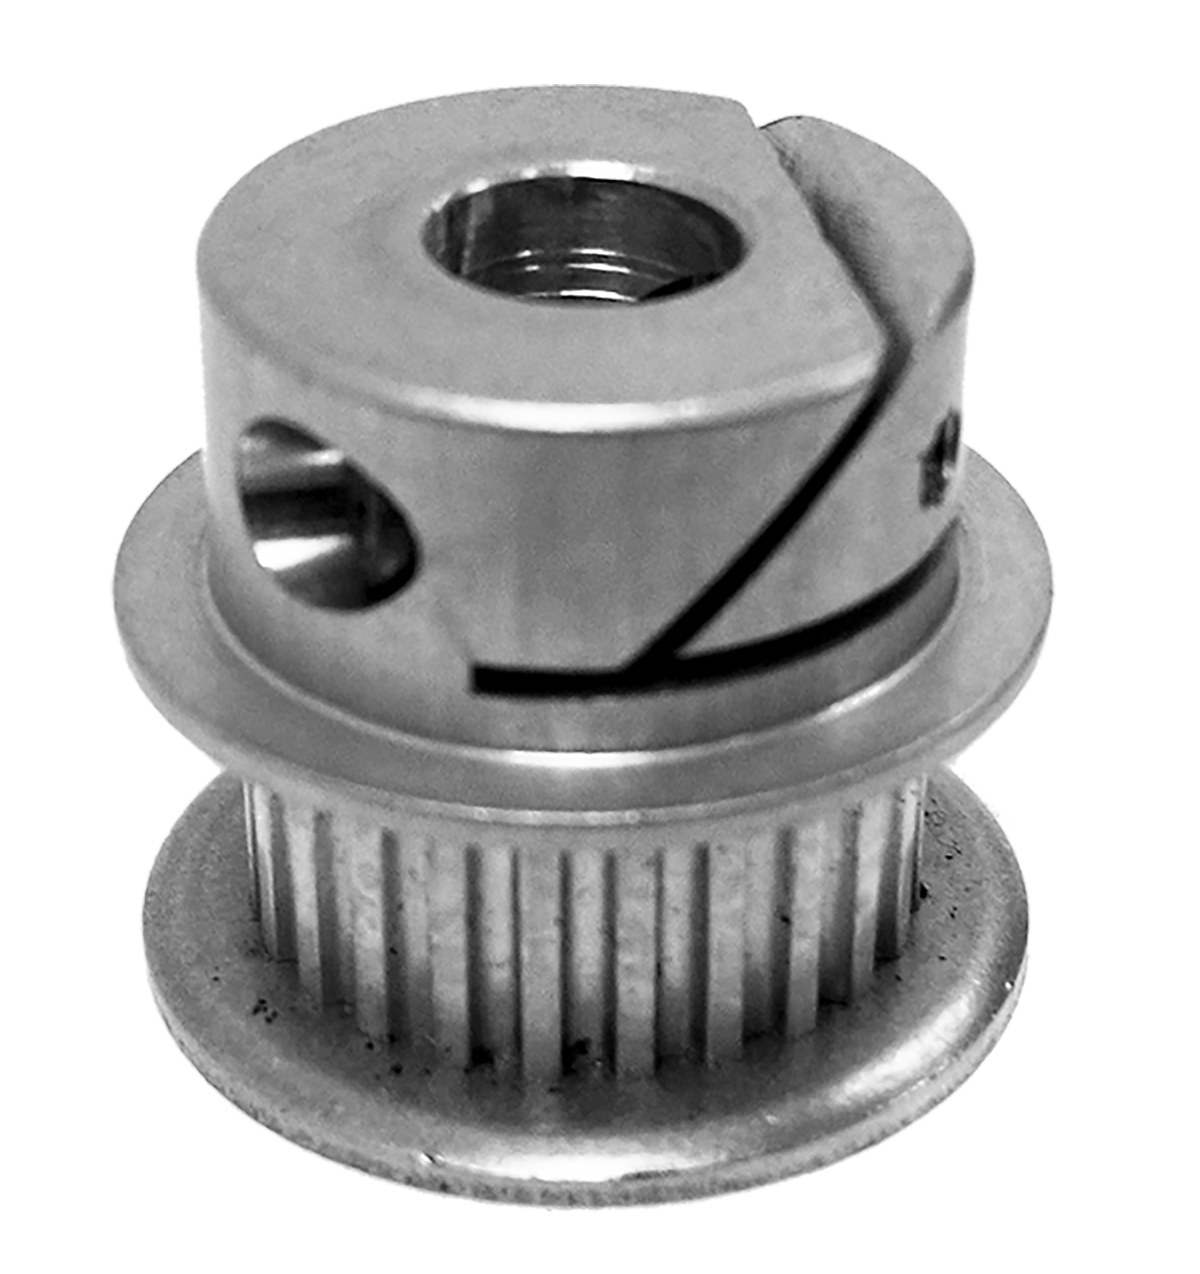 48MP025-IA3 - E-Z Lock Hub Aluminum Imperial Pitch Pulleys